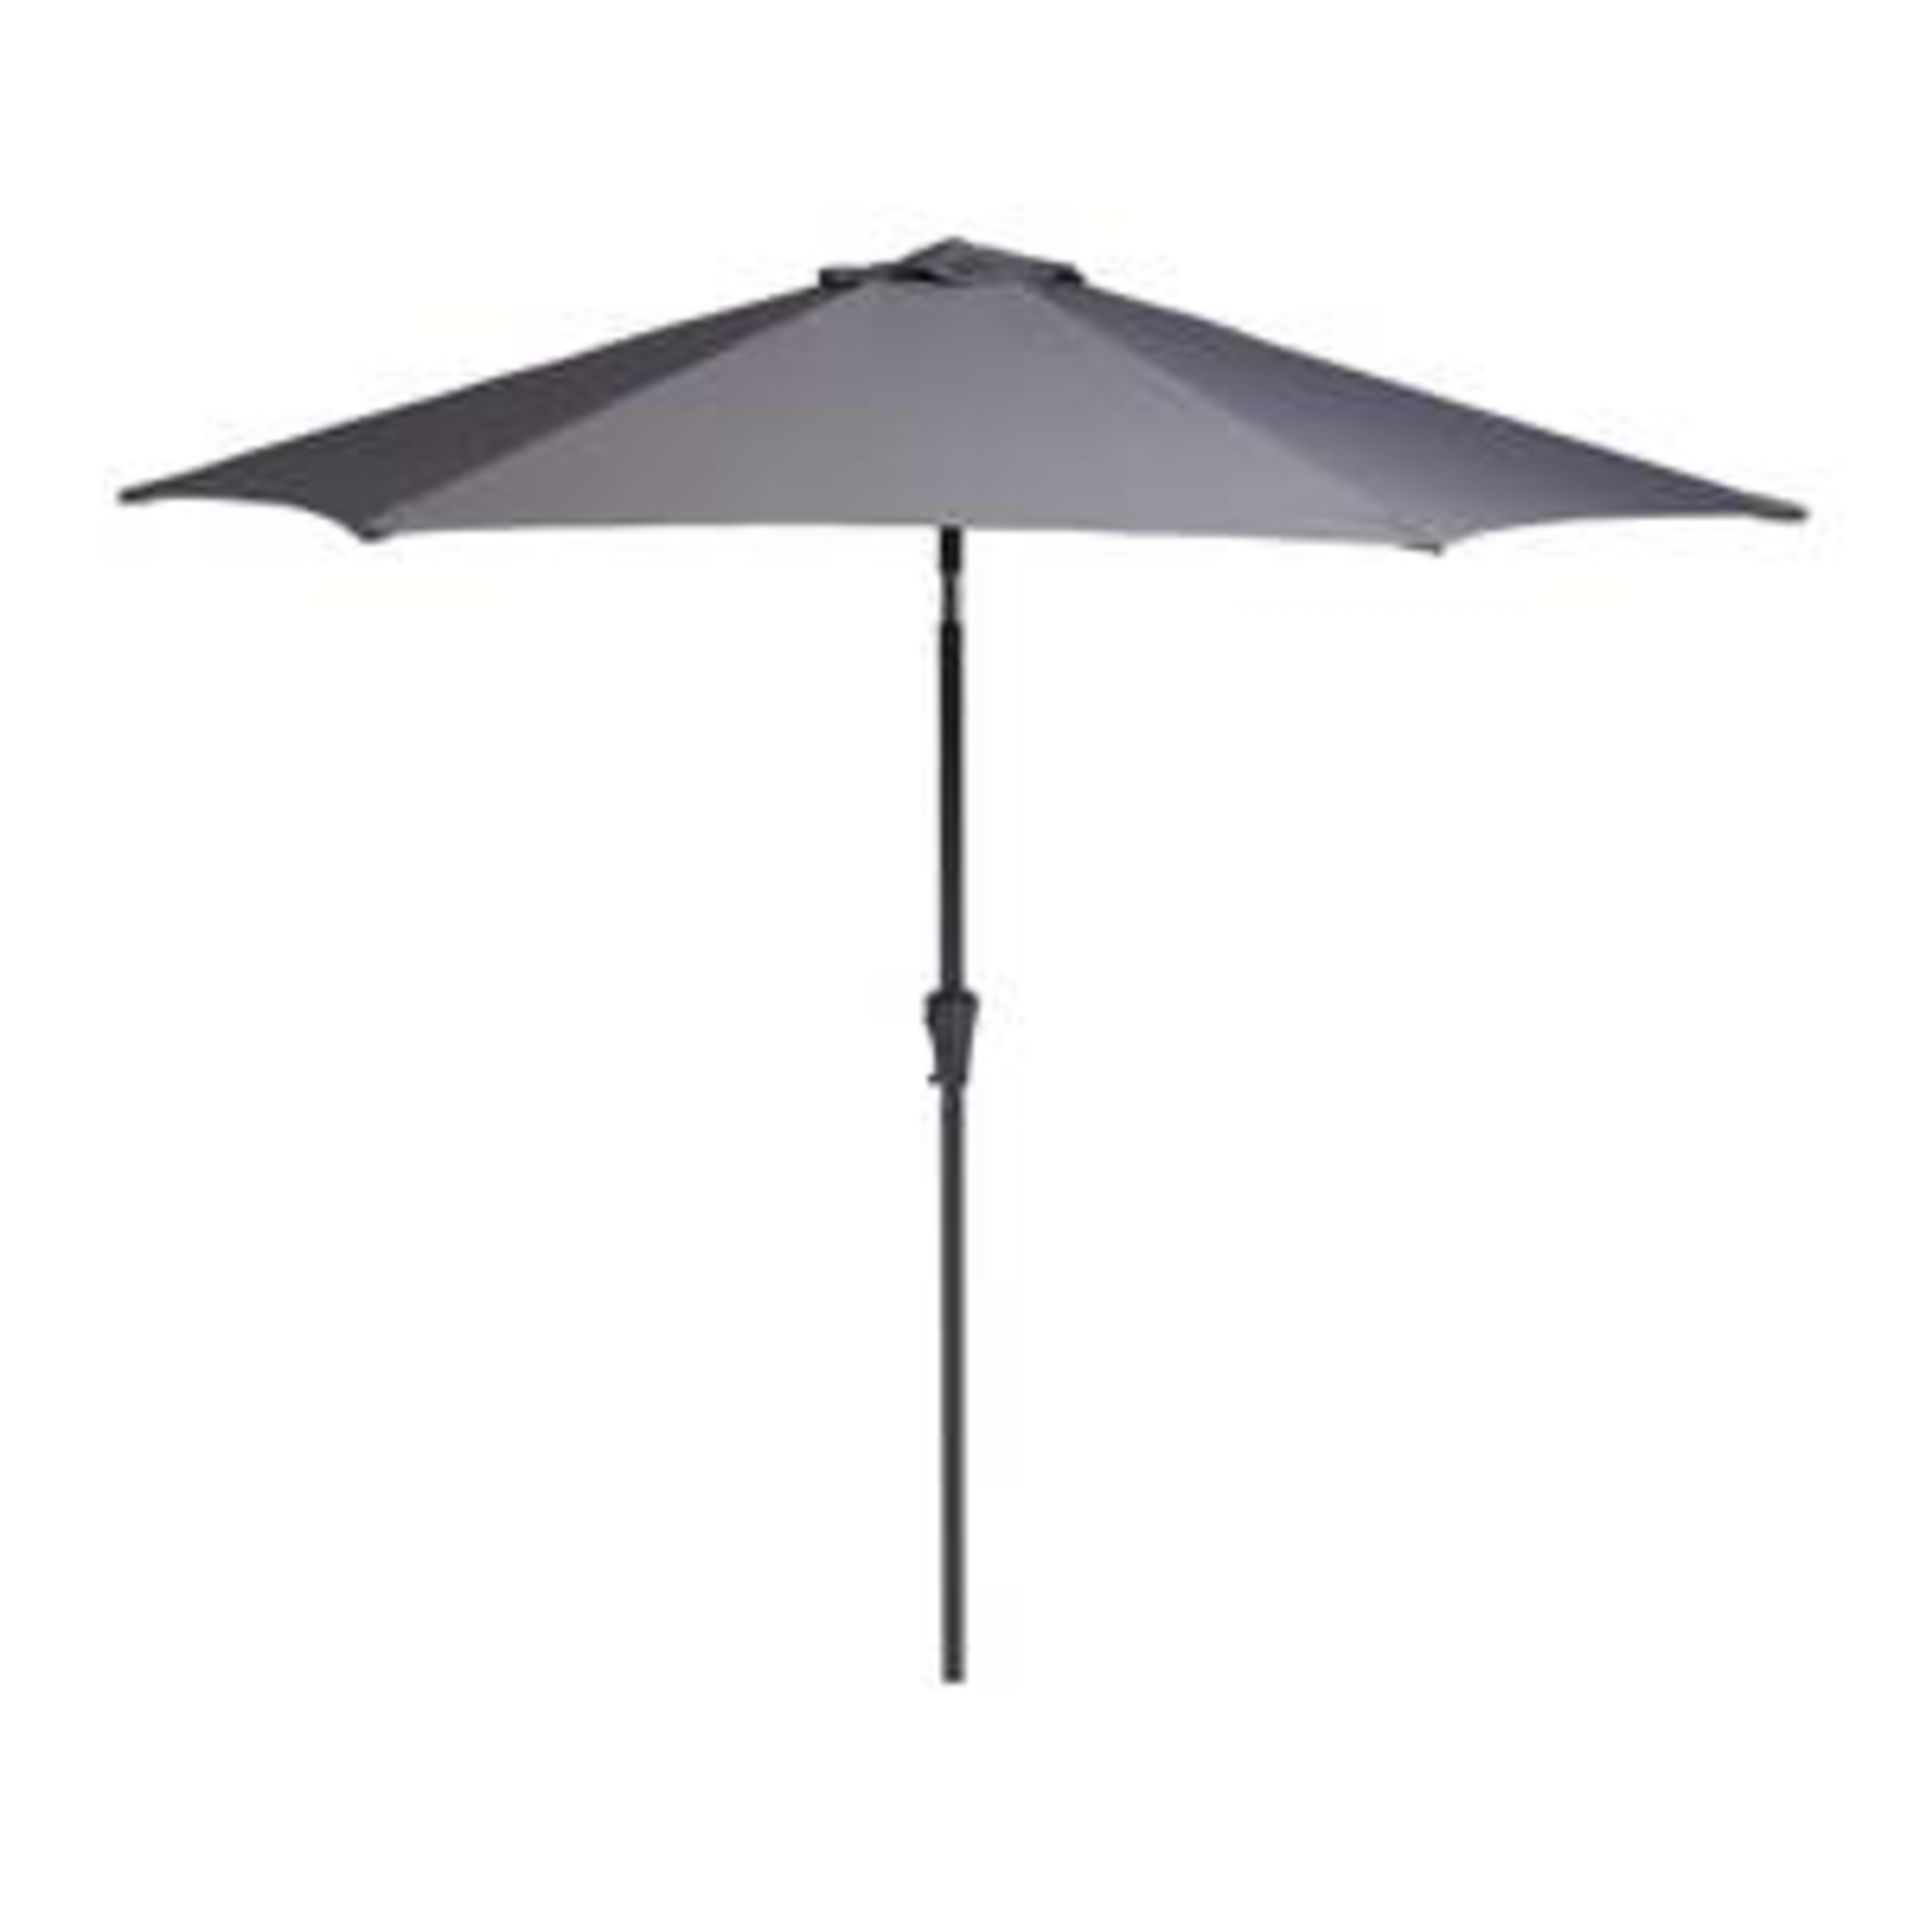 (2O) 6x Mixed Size / Style Parasols Heads. (Please Note Only Black Parasol Has Lower Base Pole – Al